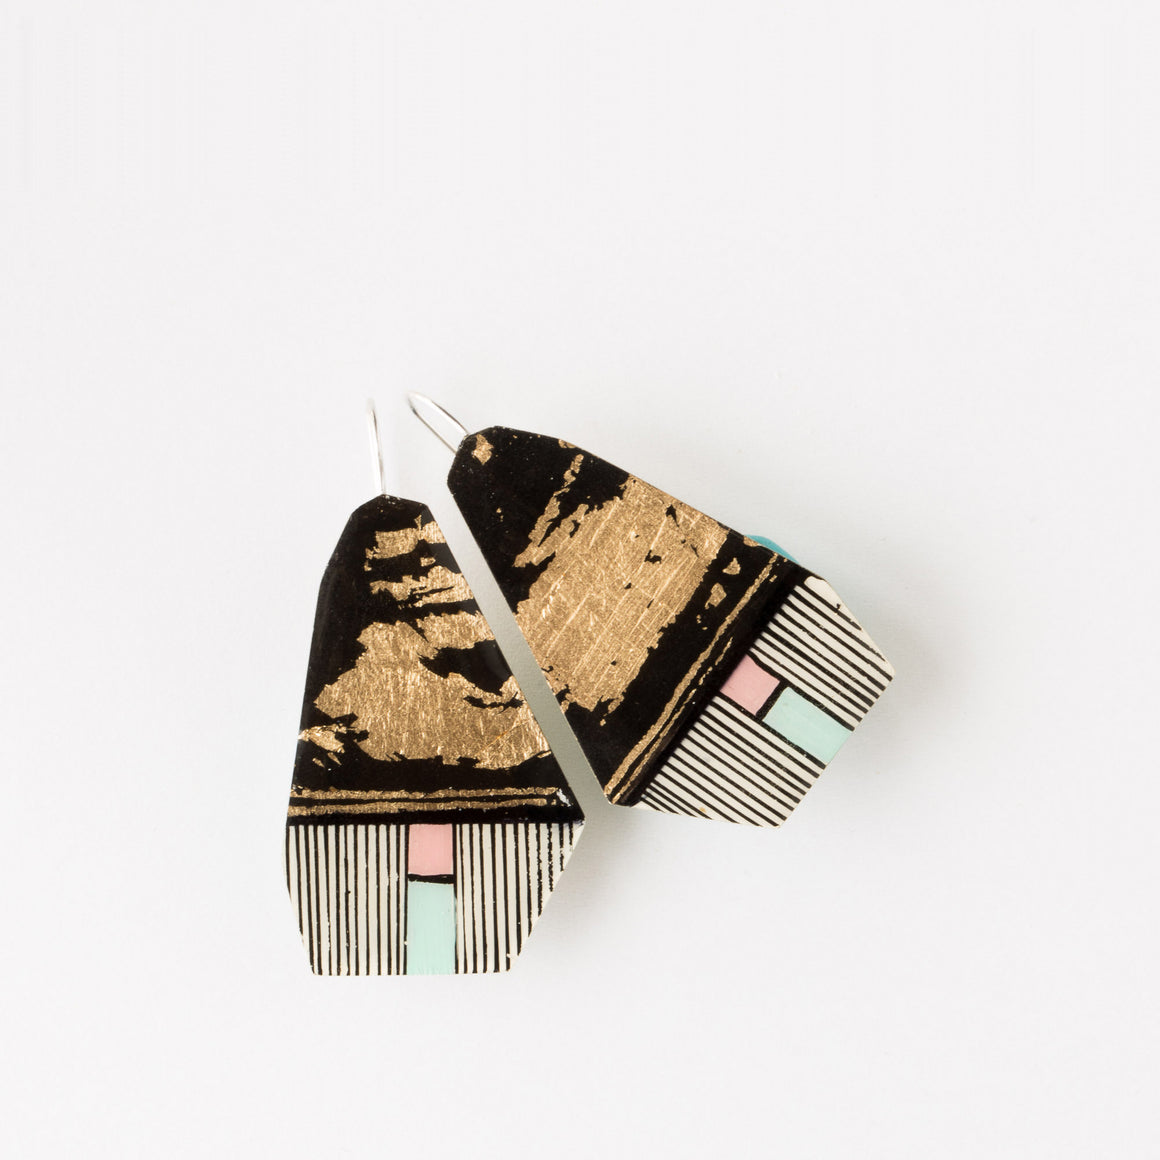 589-2 - Hand-Painted Contemporary Earrings - Sold by Chic & Basta